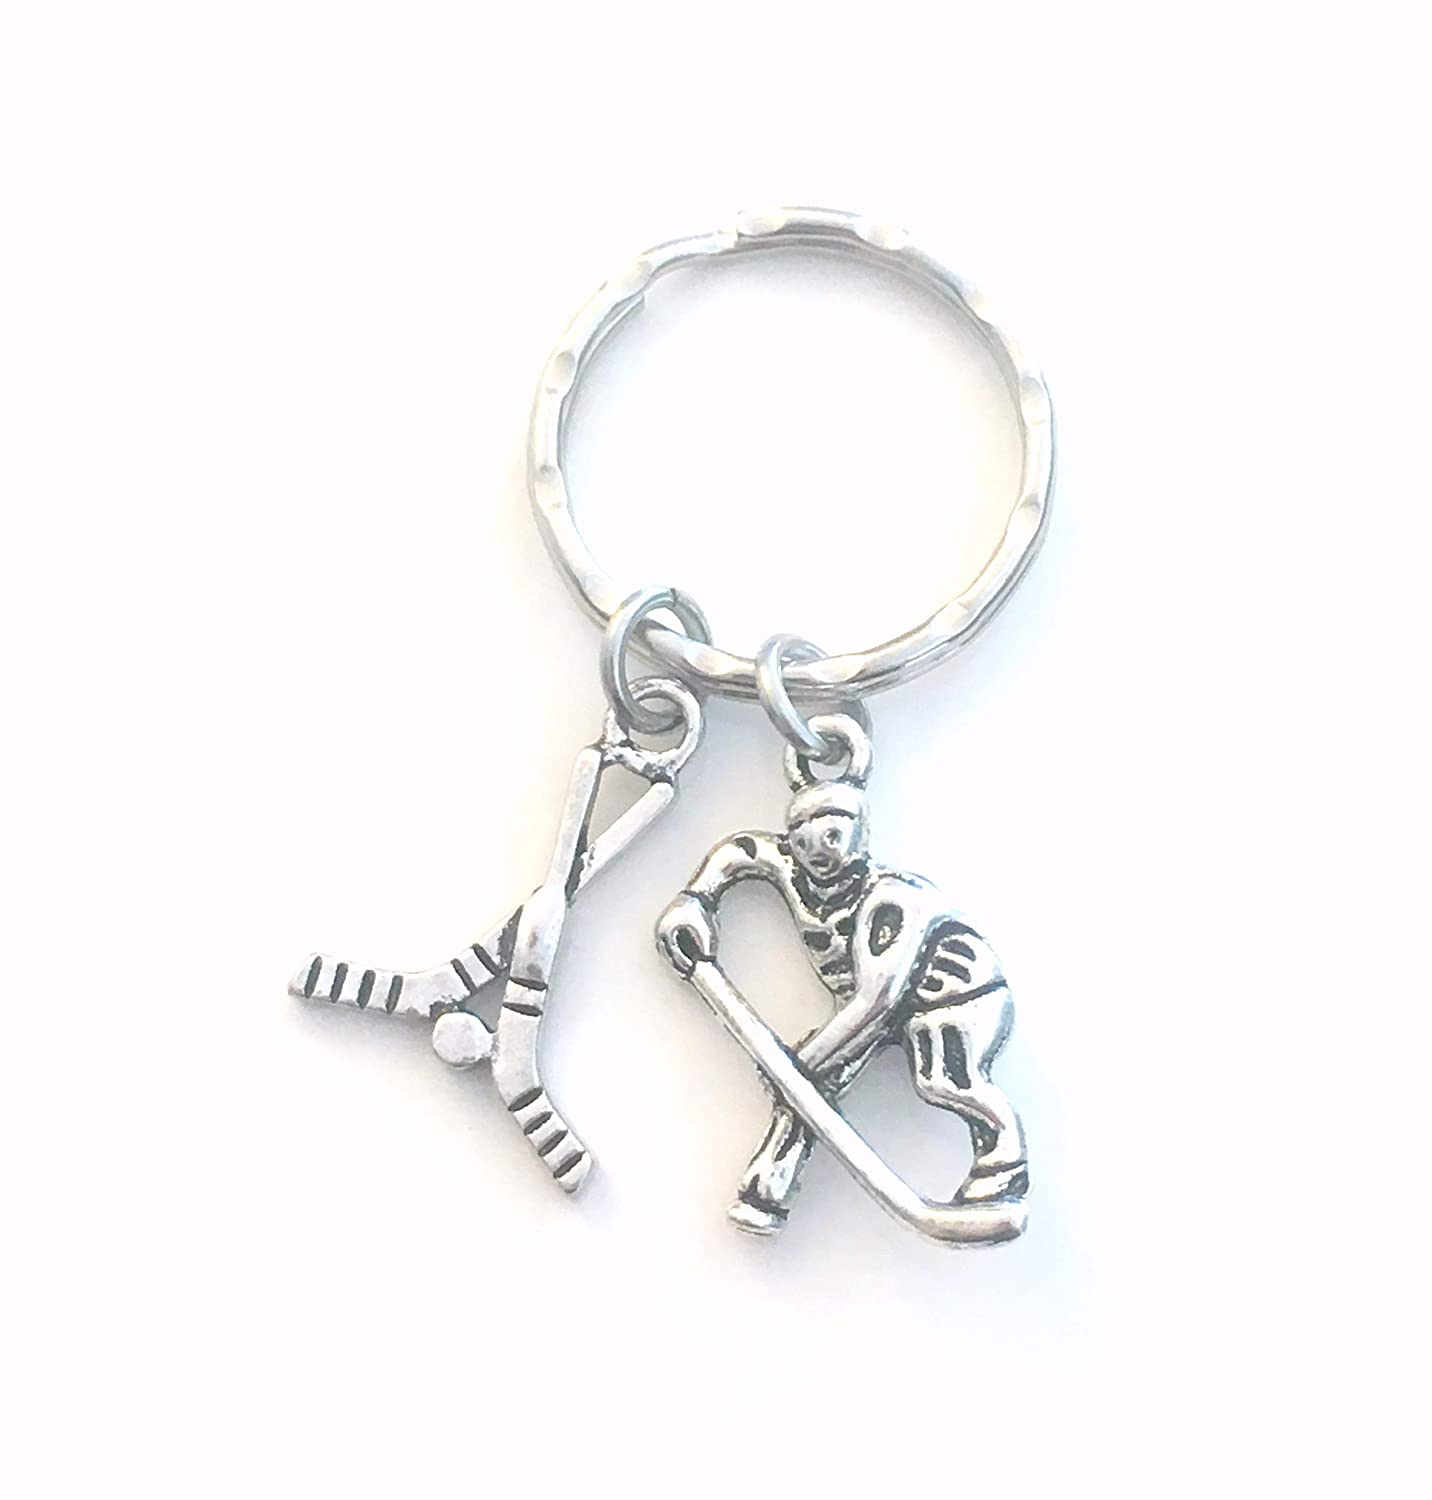 Ice Hockey Keychain, Gift for Coach or Player's Key Chain Gift for Coach or Player' s Key Chain